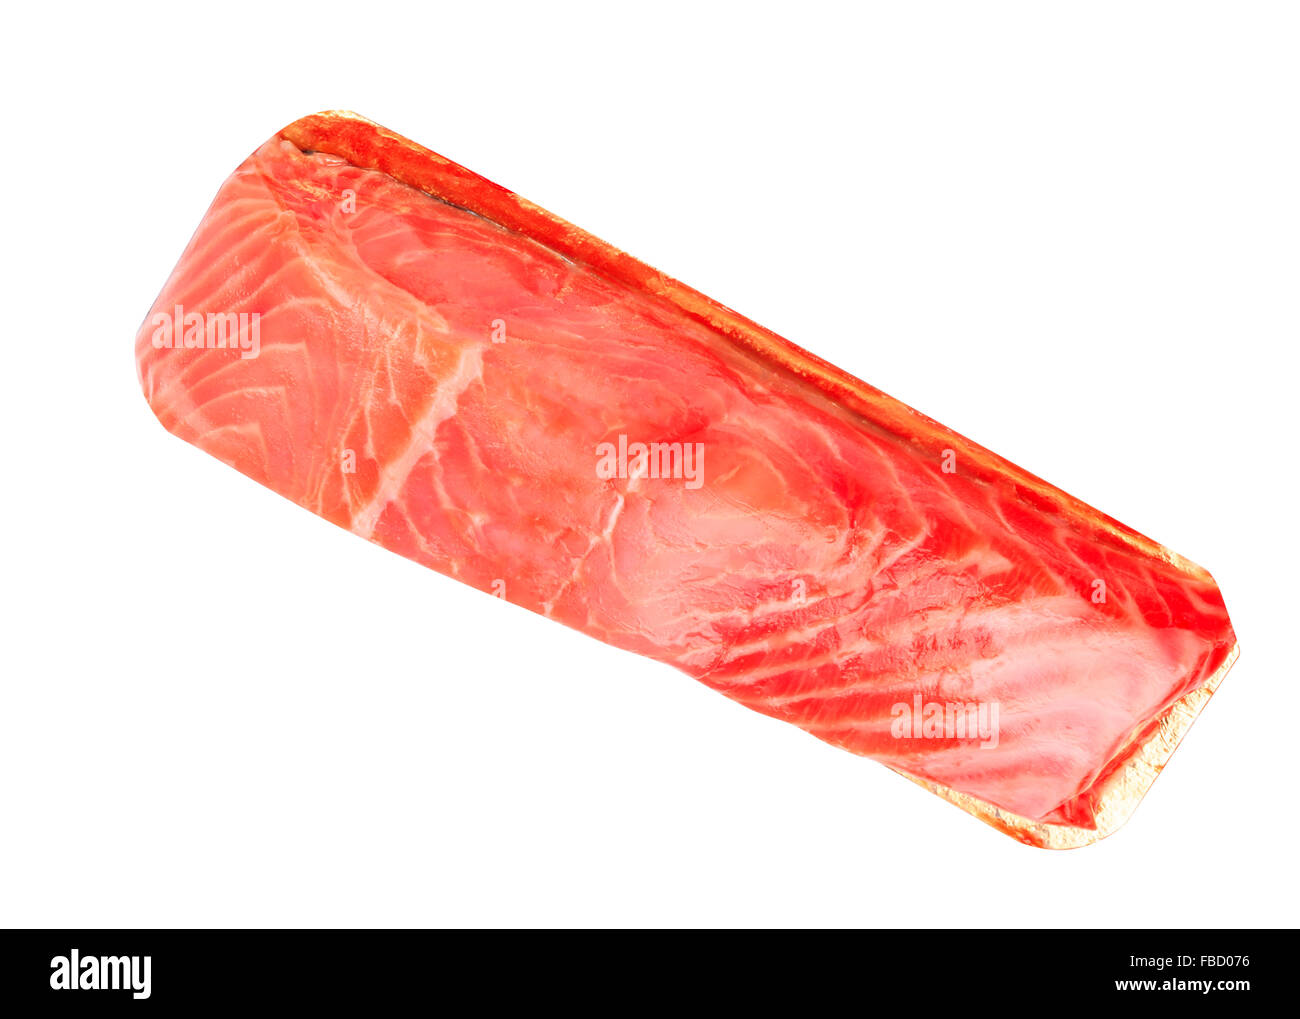 Piece of red fish fillet isolated on white stock photo for Red fish fillet